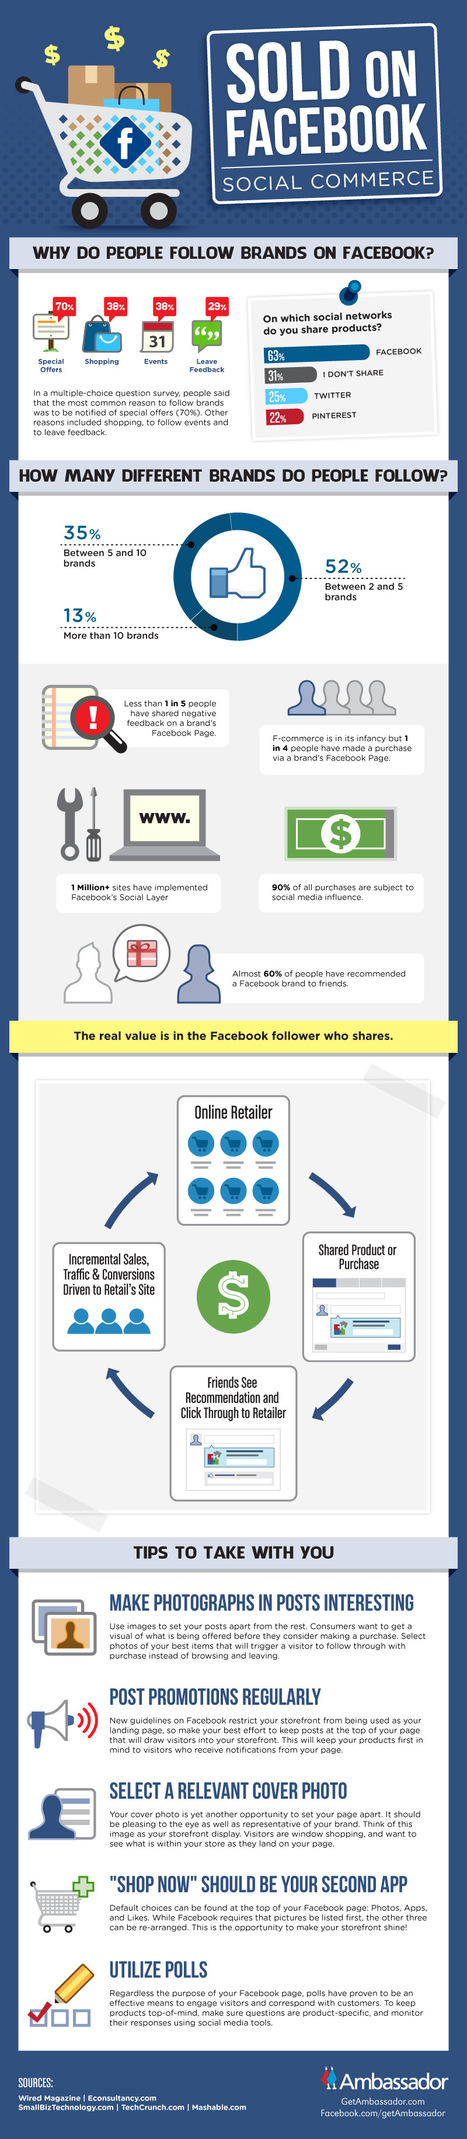 INFOGRAPHIC: What Makes People Sold On Brands On Facebook? | Social Mercor | Scoop.it